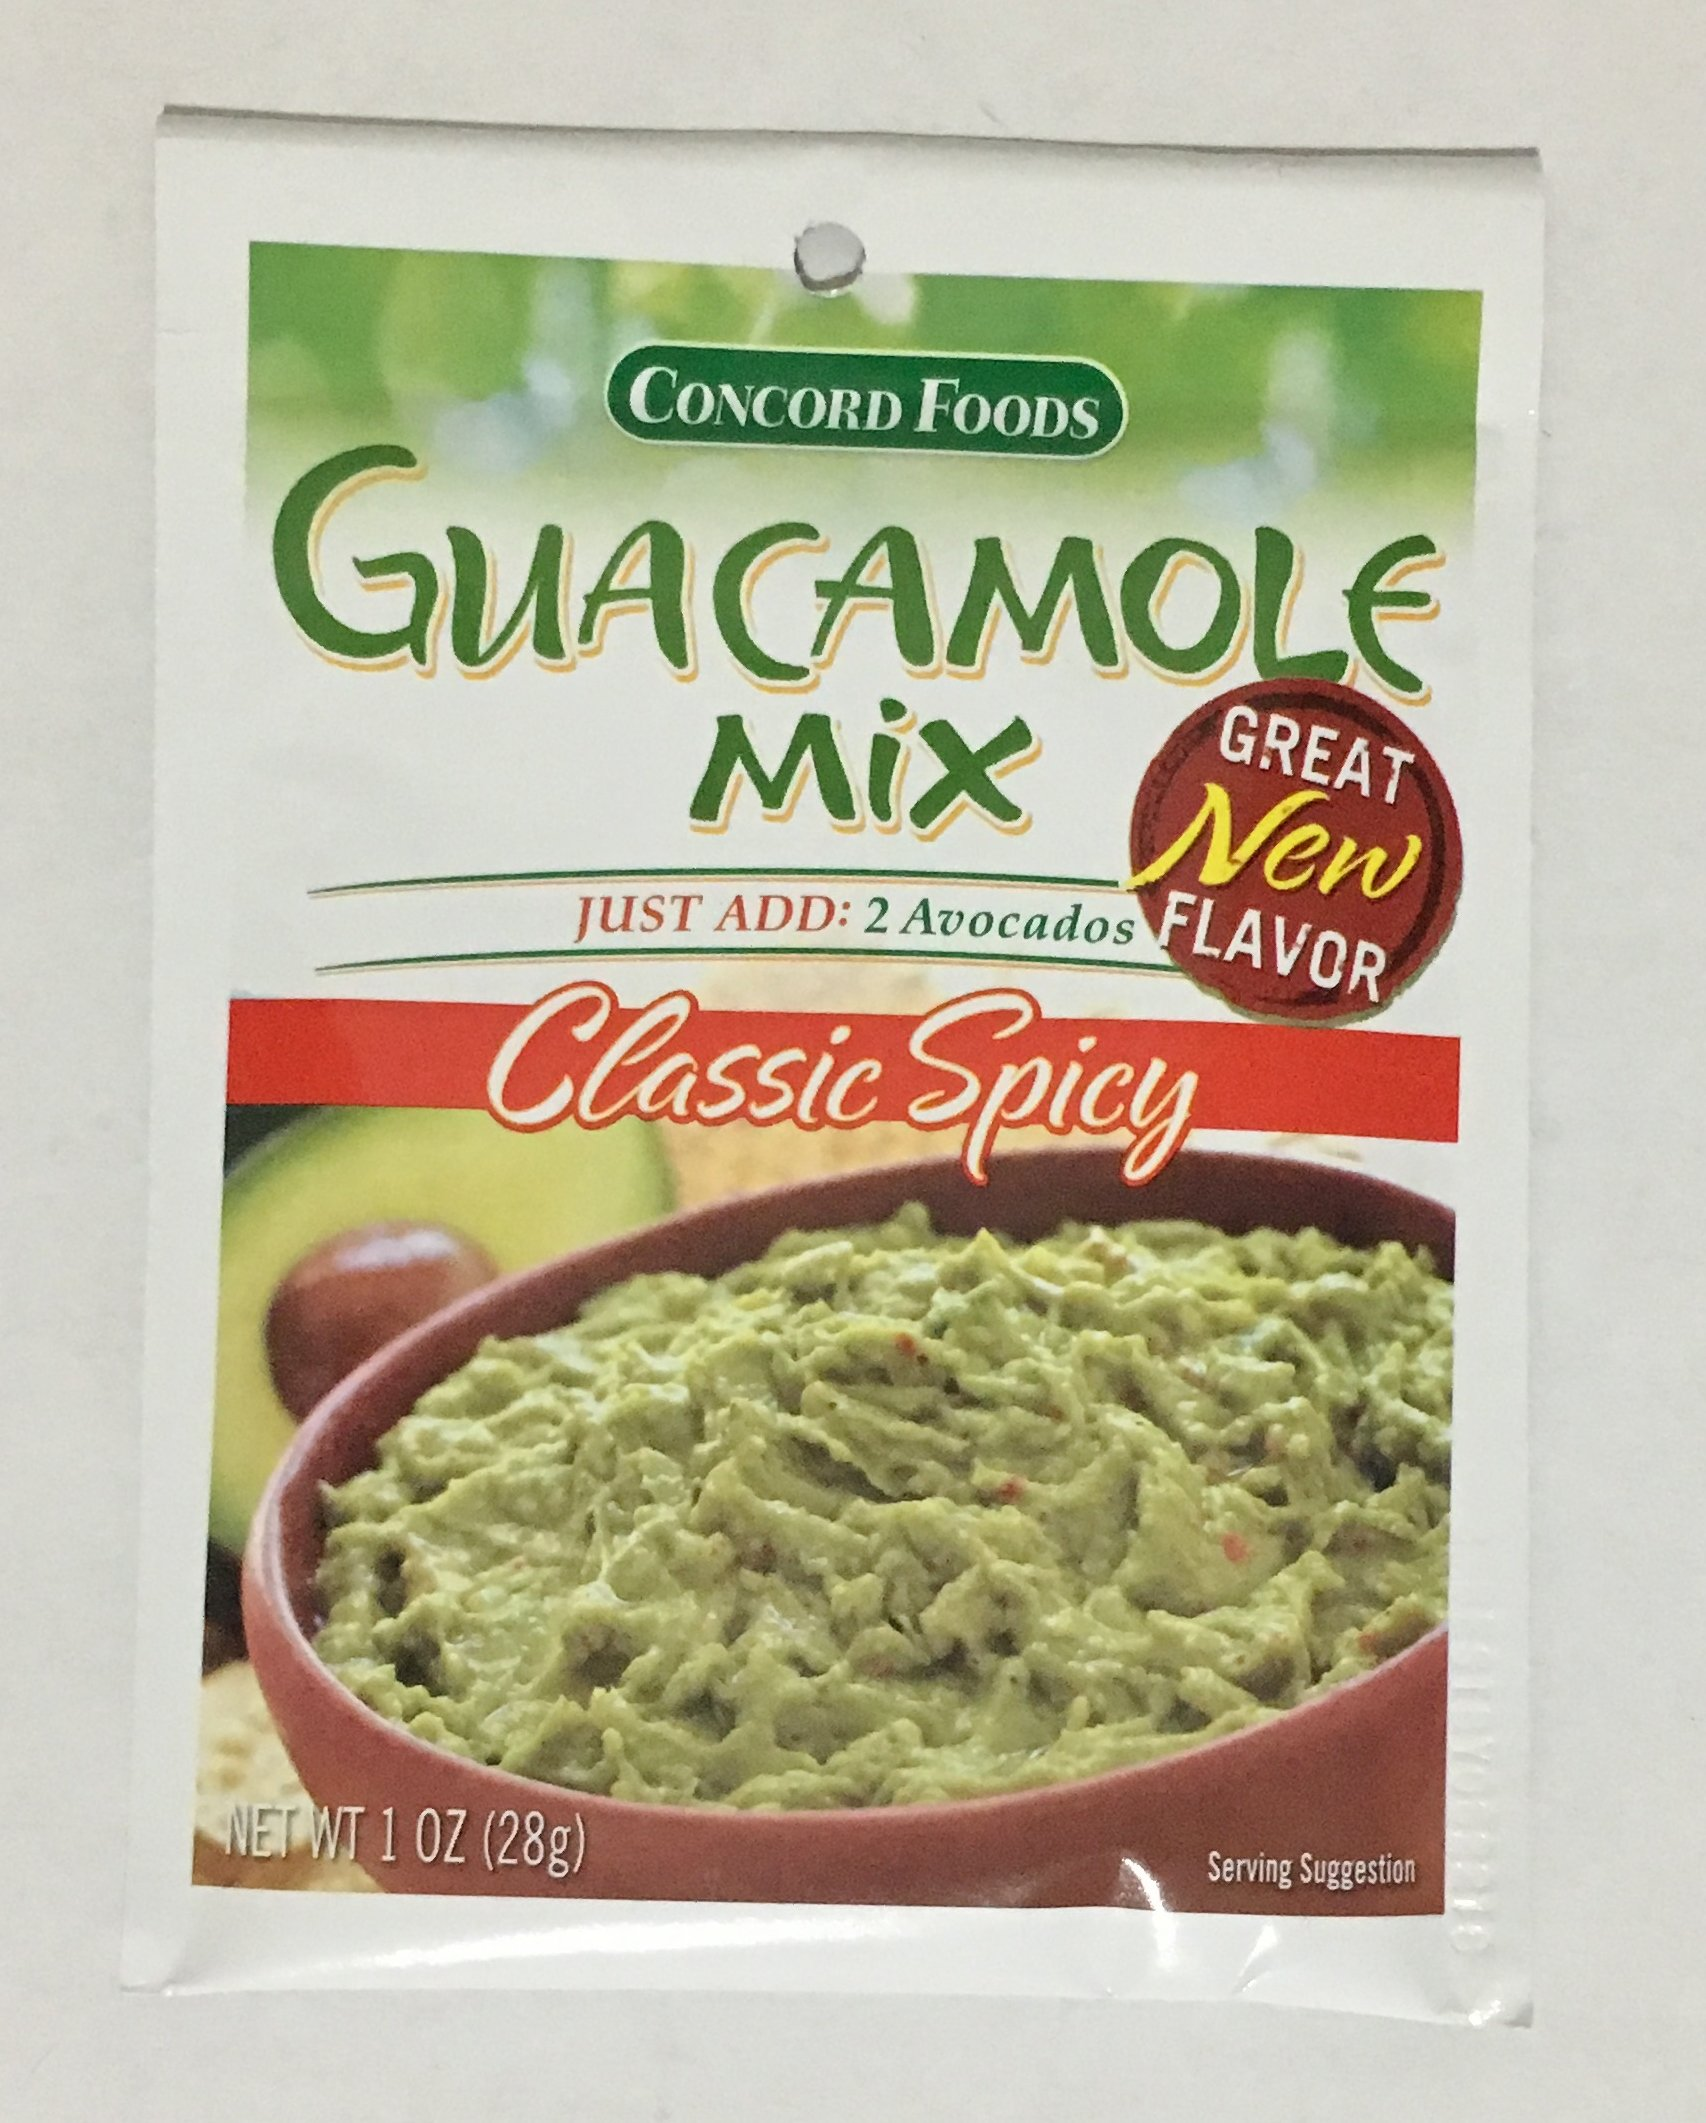 Concord Foods, Guacamole Mix, Classic Spicy, 1oz Packet (Pack of 6)